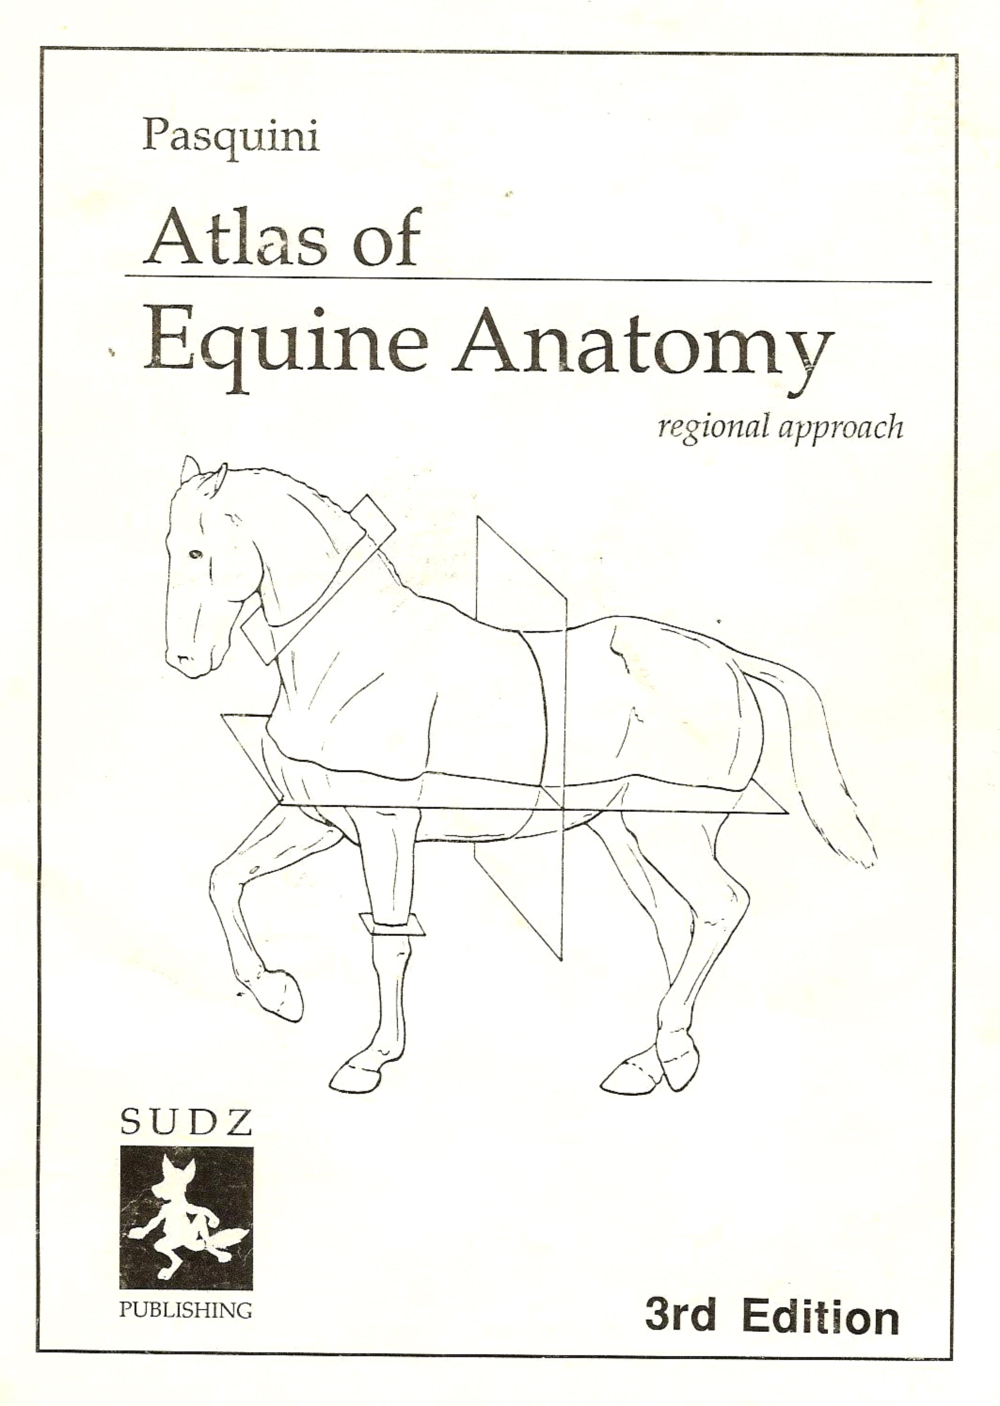 ATLAS OF EQUINE ANATOMY REGIONAL APPROACH 3rd Edition 1991 An Invaluable Reference Out Of Print Again I Got Mine On EBay